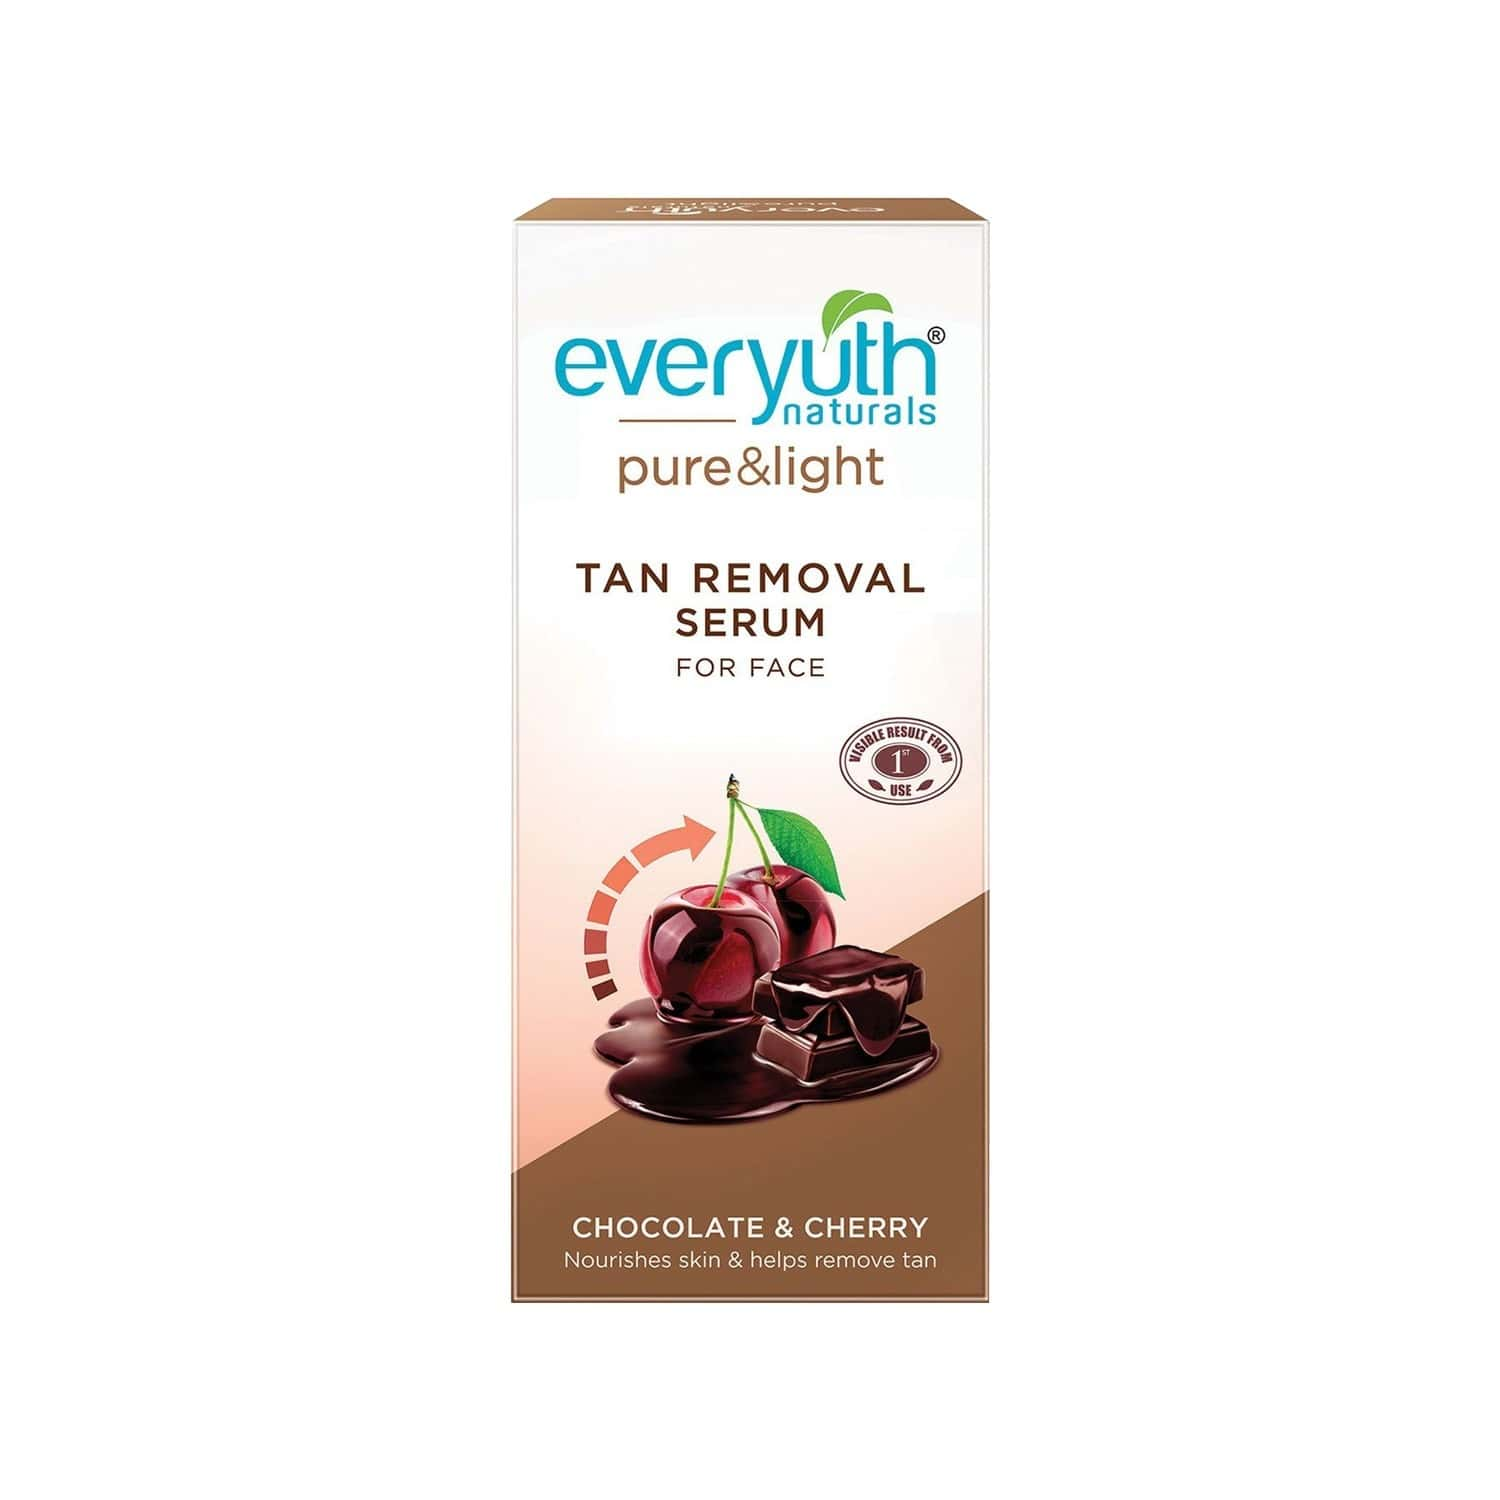 Everyuth Naturals Tan Removal Serum Bottle Of 30 Ml